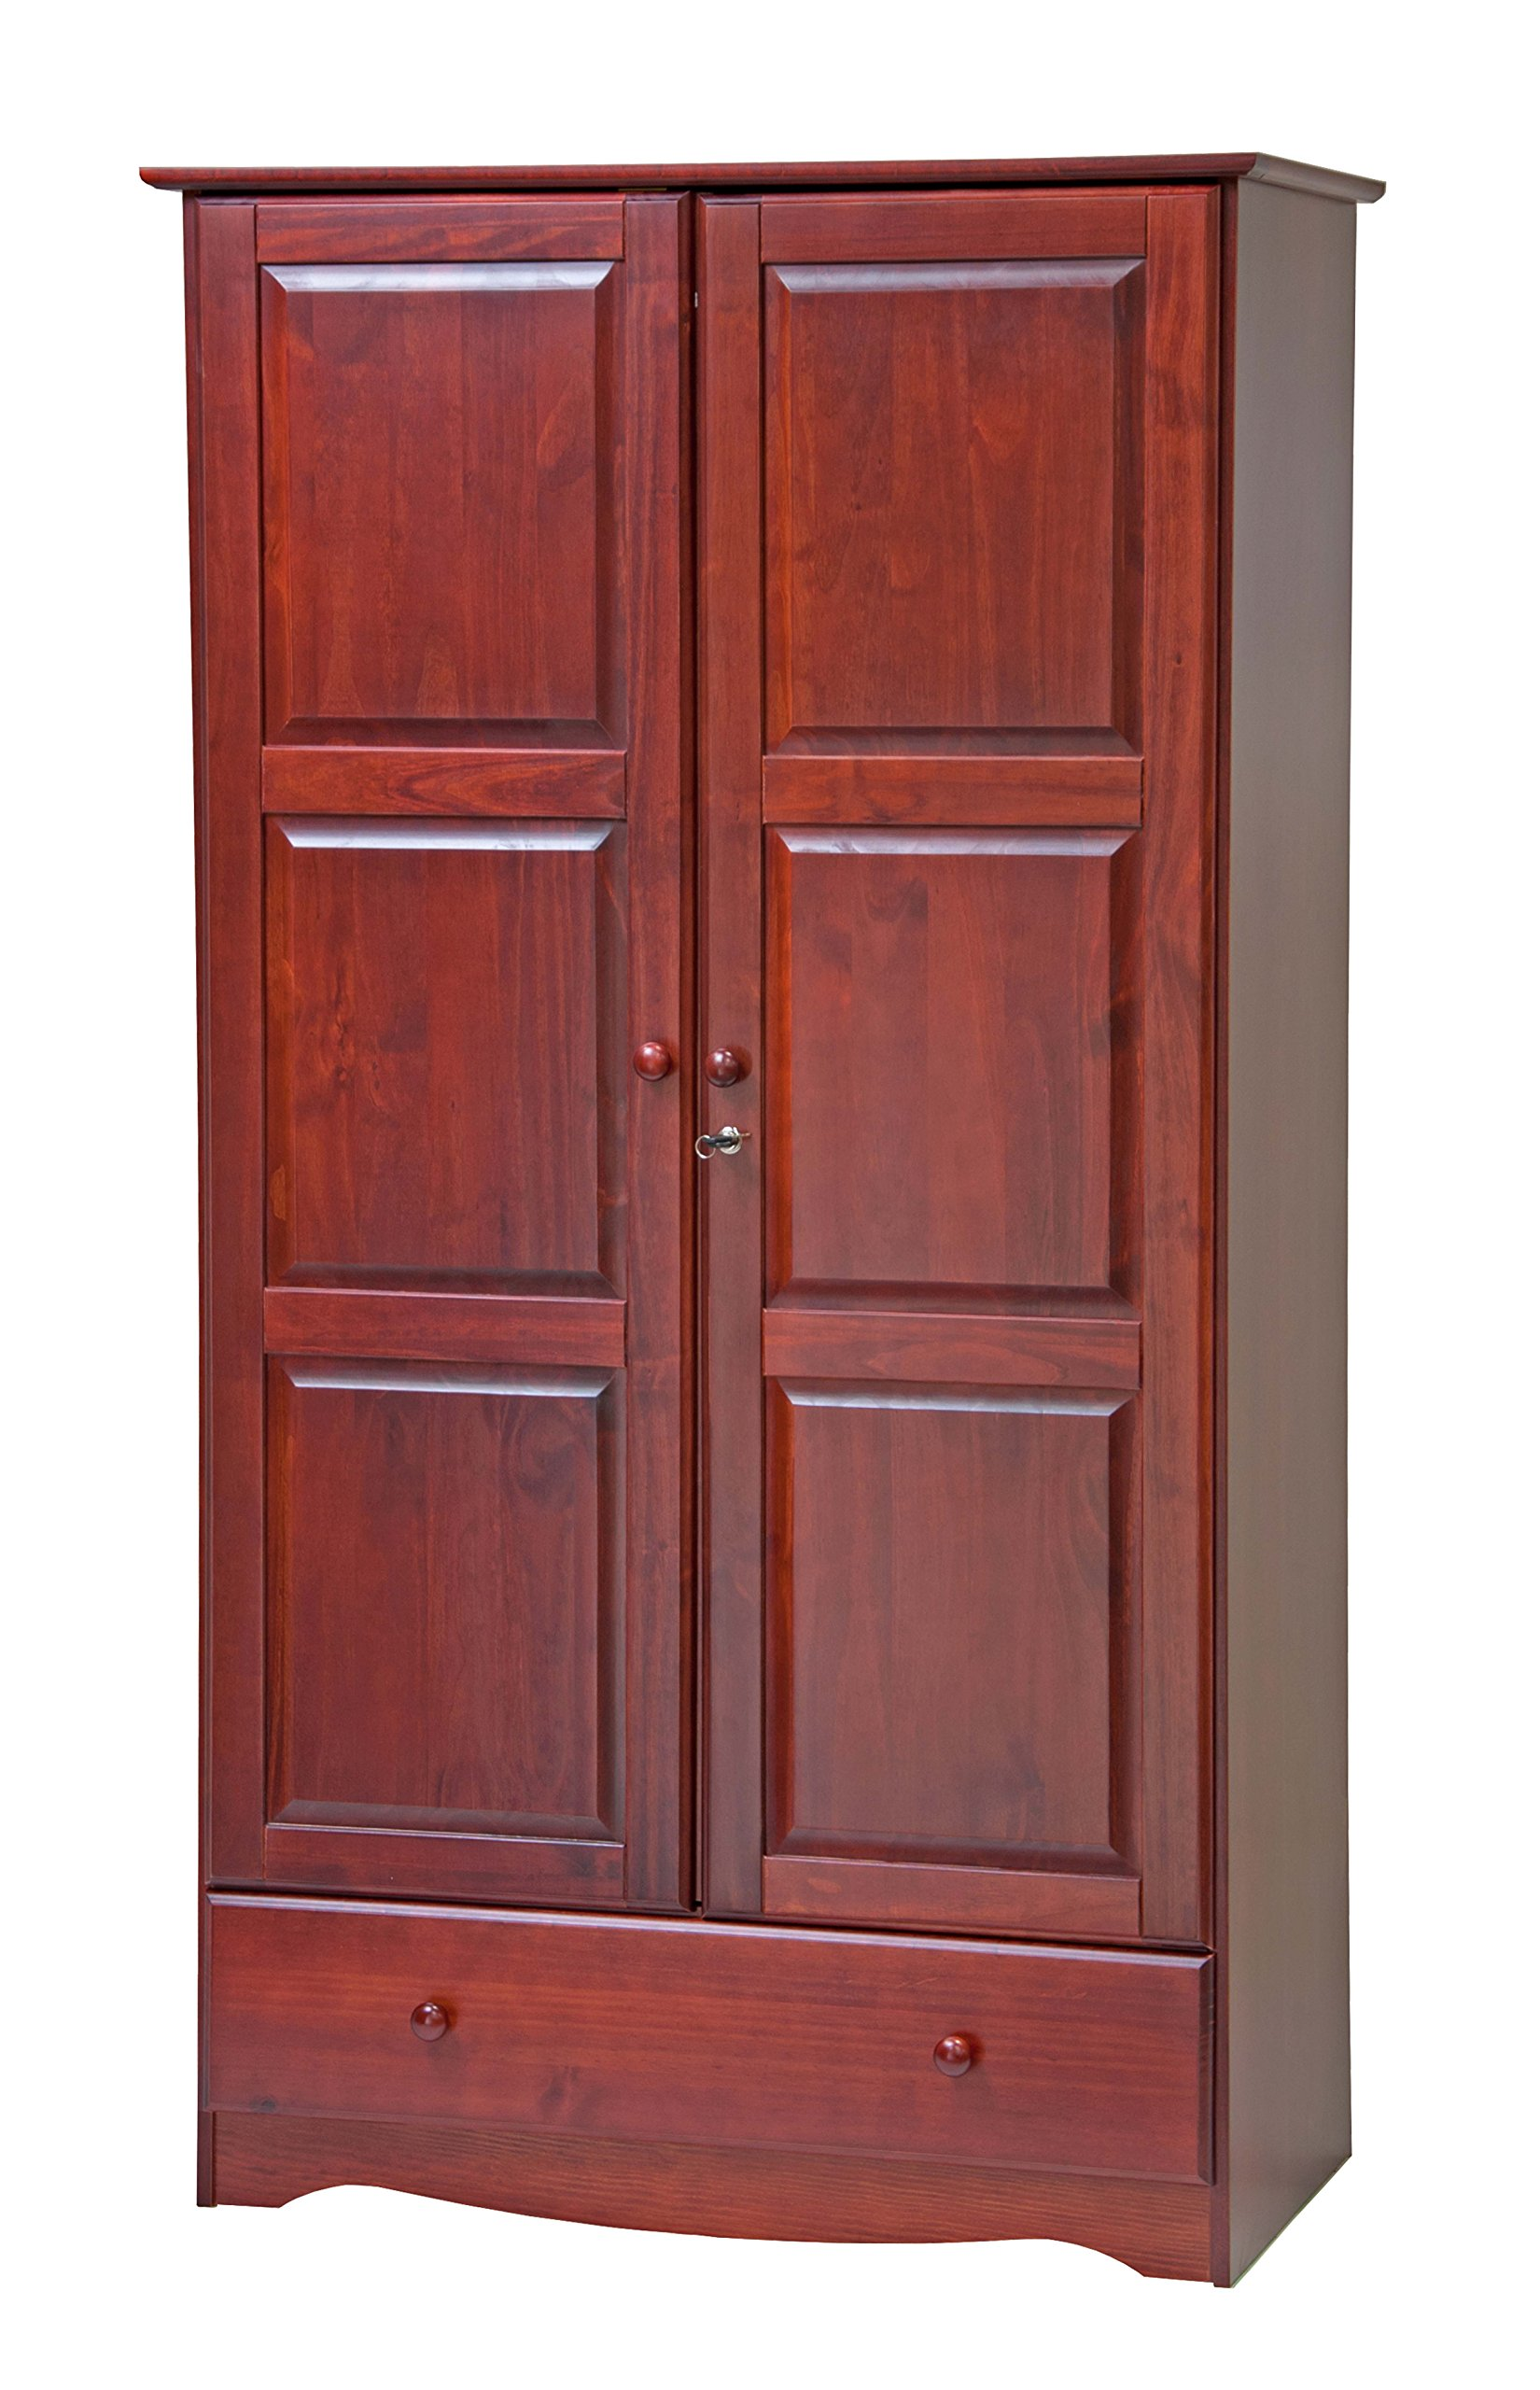 100% Solid Wood Universal Wardrobe/Armoire/Closet by Palace Imports, Mahogany Color, 40''W x 72''H x 21''D, 2 Clothing Rods, 2 Shelves, 1 Lock, 1 Drawer Included. Additional Shelves Sold in Packs of 2.